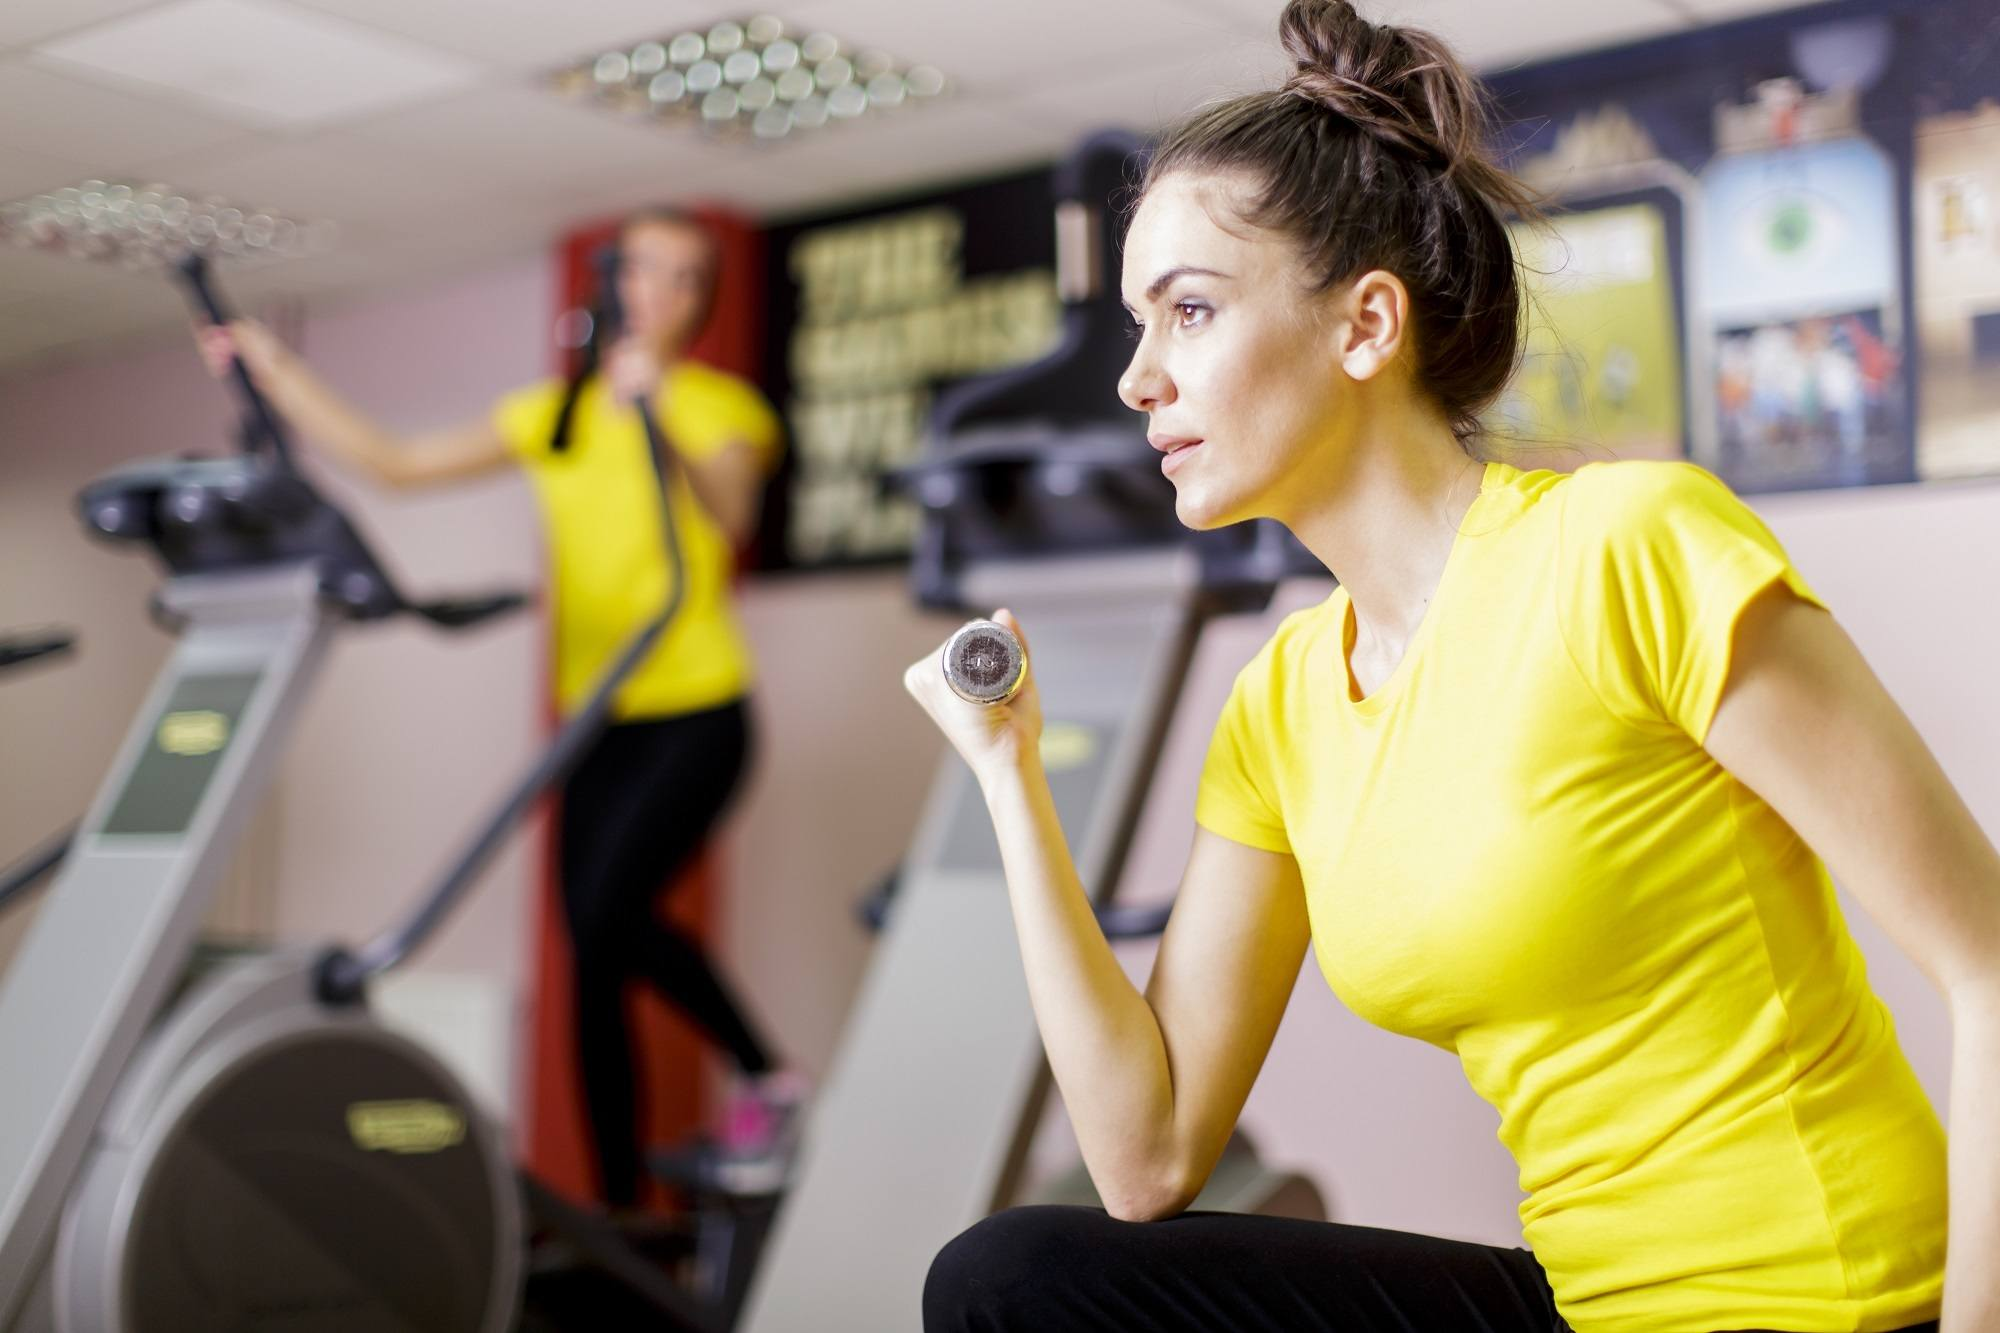 Hairstyles for the gym: Messy top bu